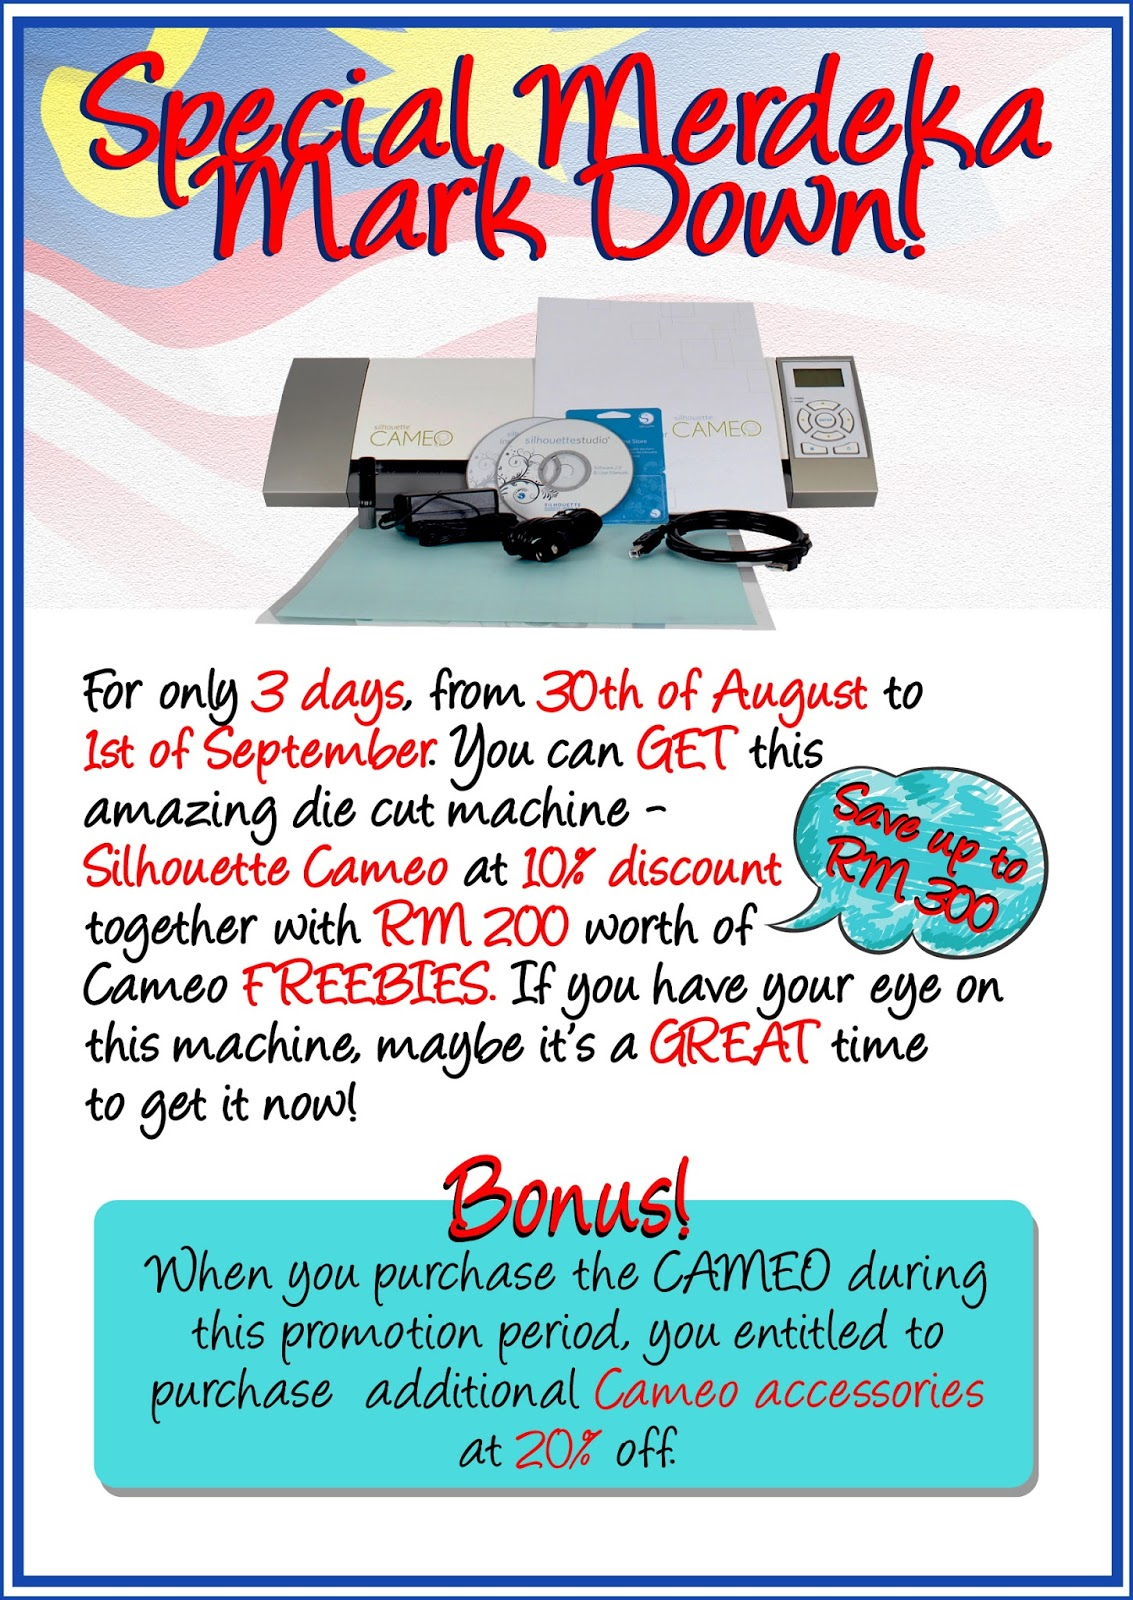 Papier Love Merdeka Frying Pan 20 Cm And Enjoy The Discount With Freebies From Us